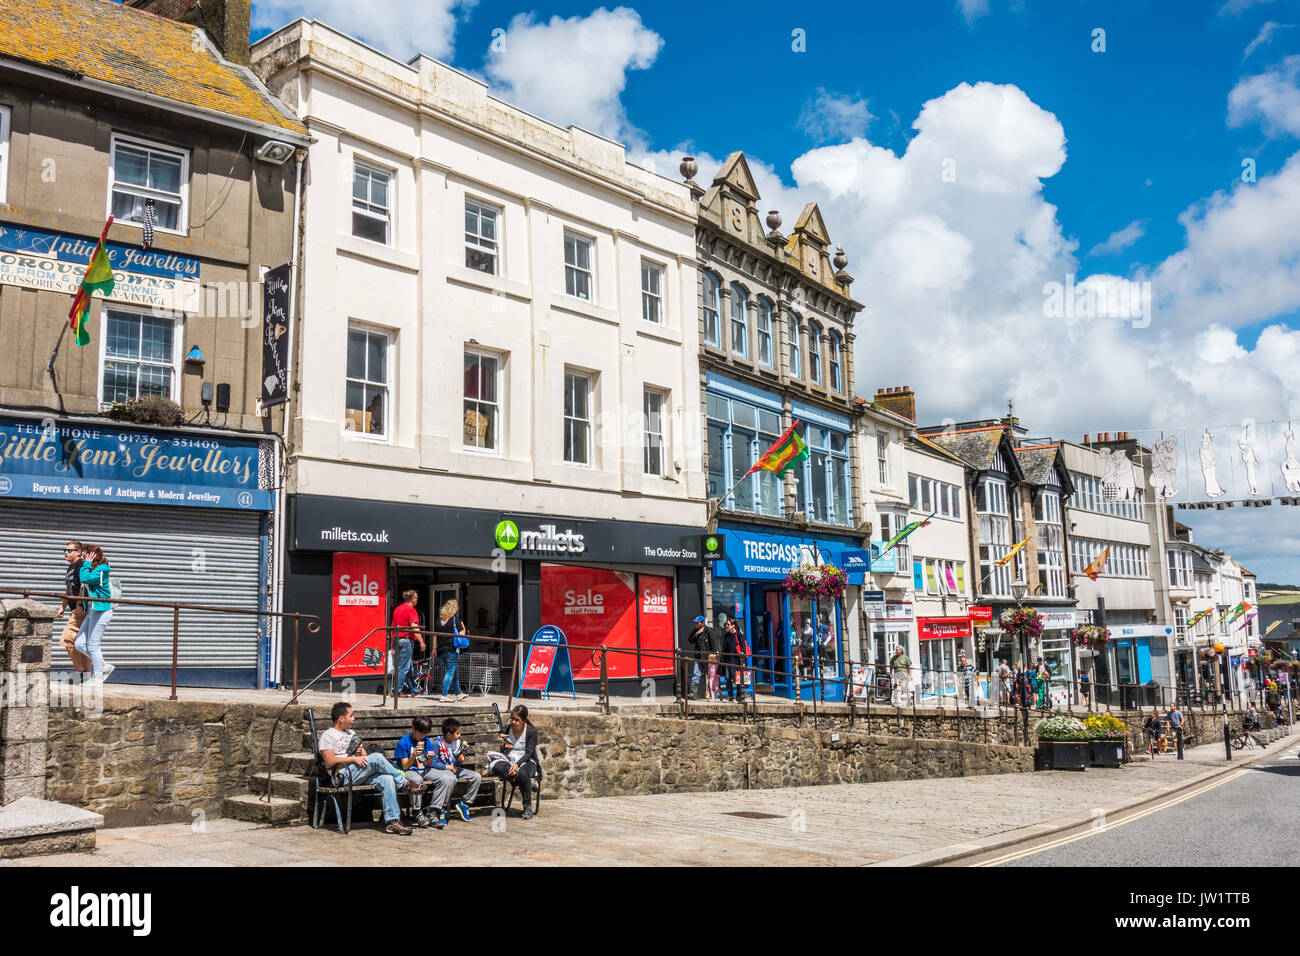 Extensive shopping facilities in Market Jew Street in the centre of Penzance, Cornwall, England, UK. - Stock Image